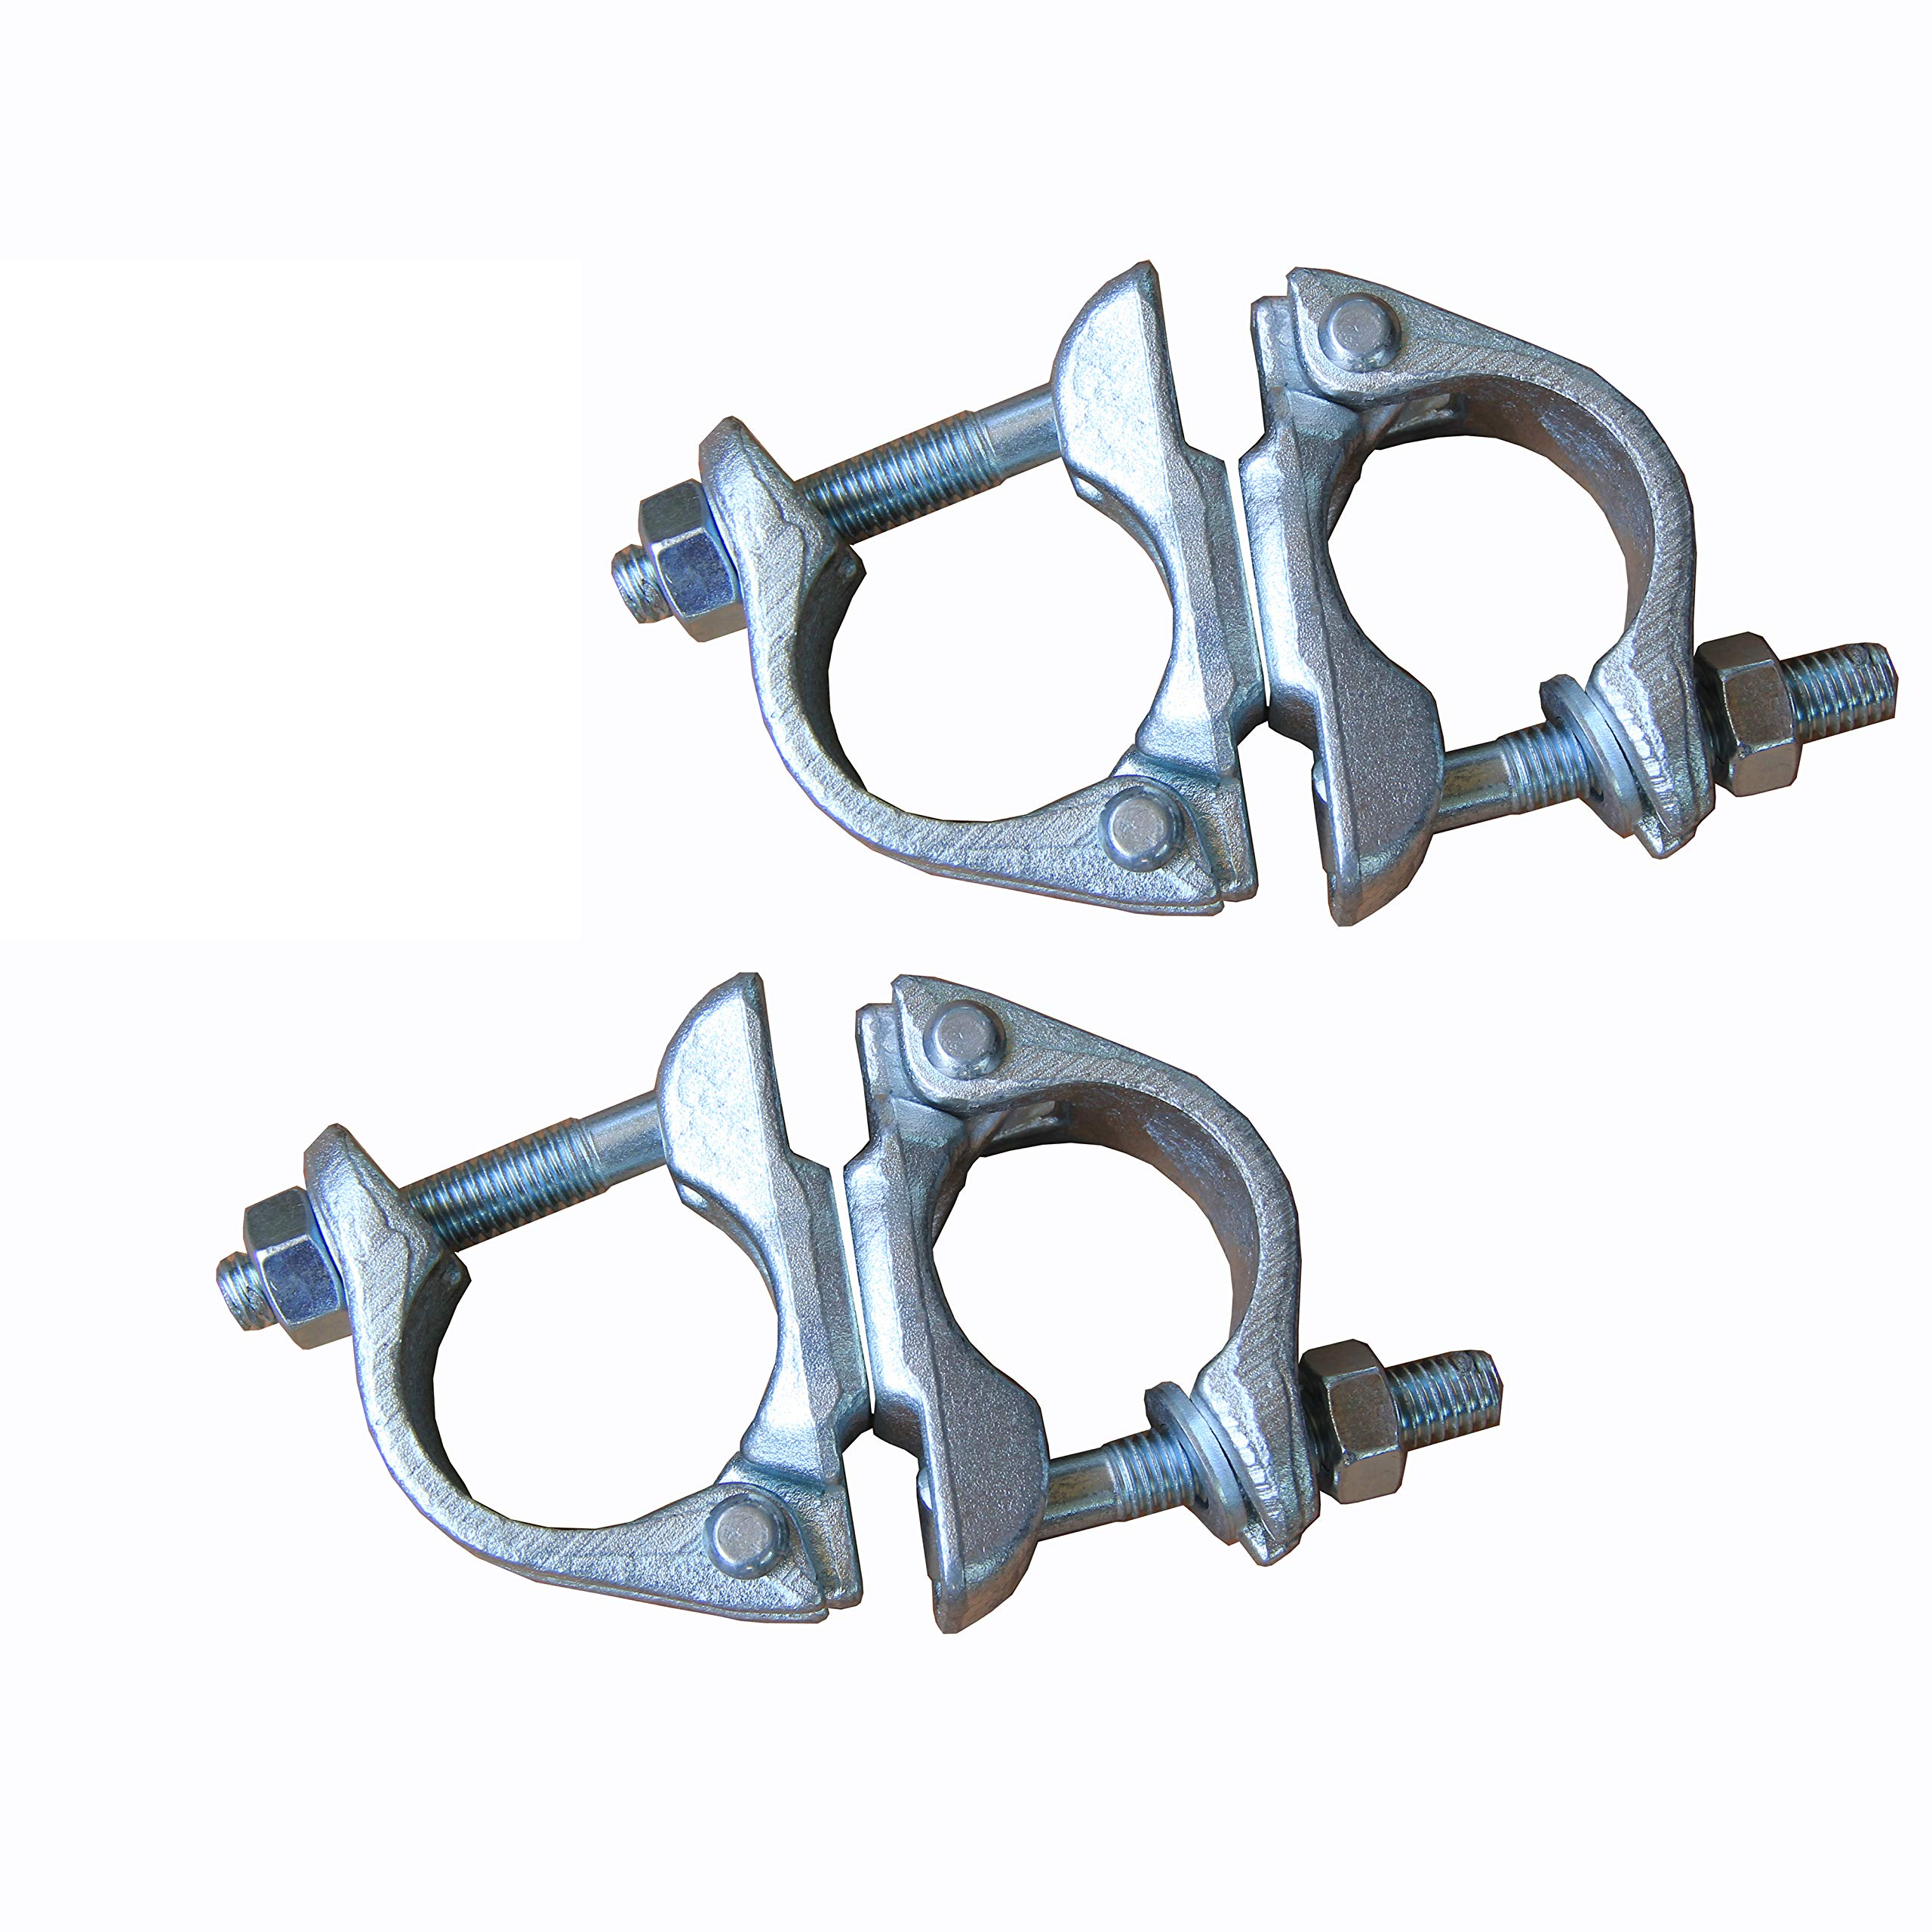 Swivel Scaffolding Clamps British Type 2 pcs Brand New Prisms by prisms